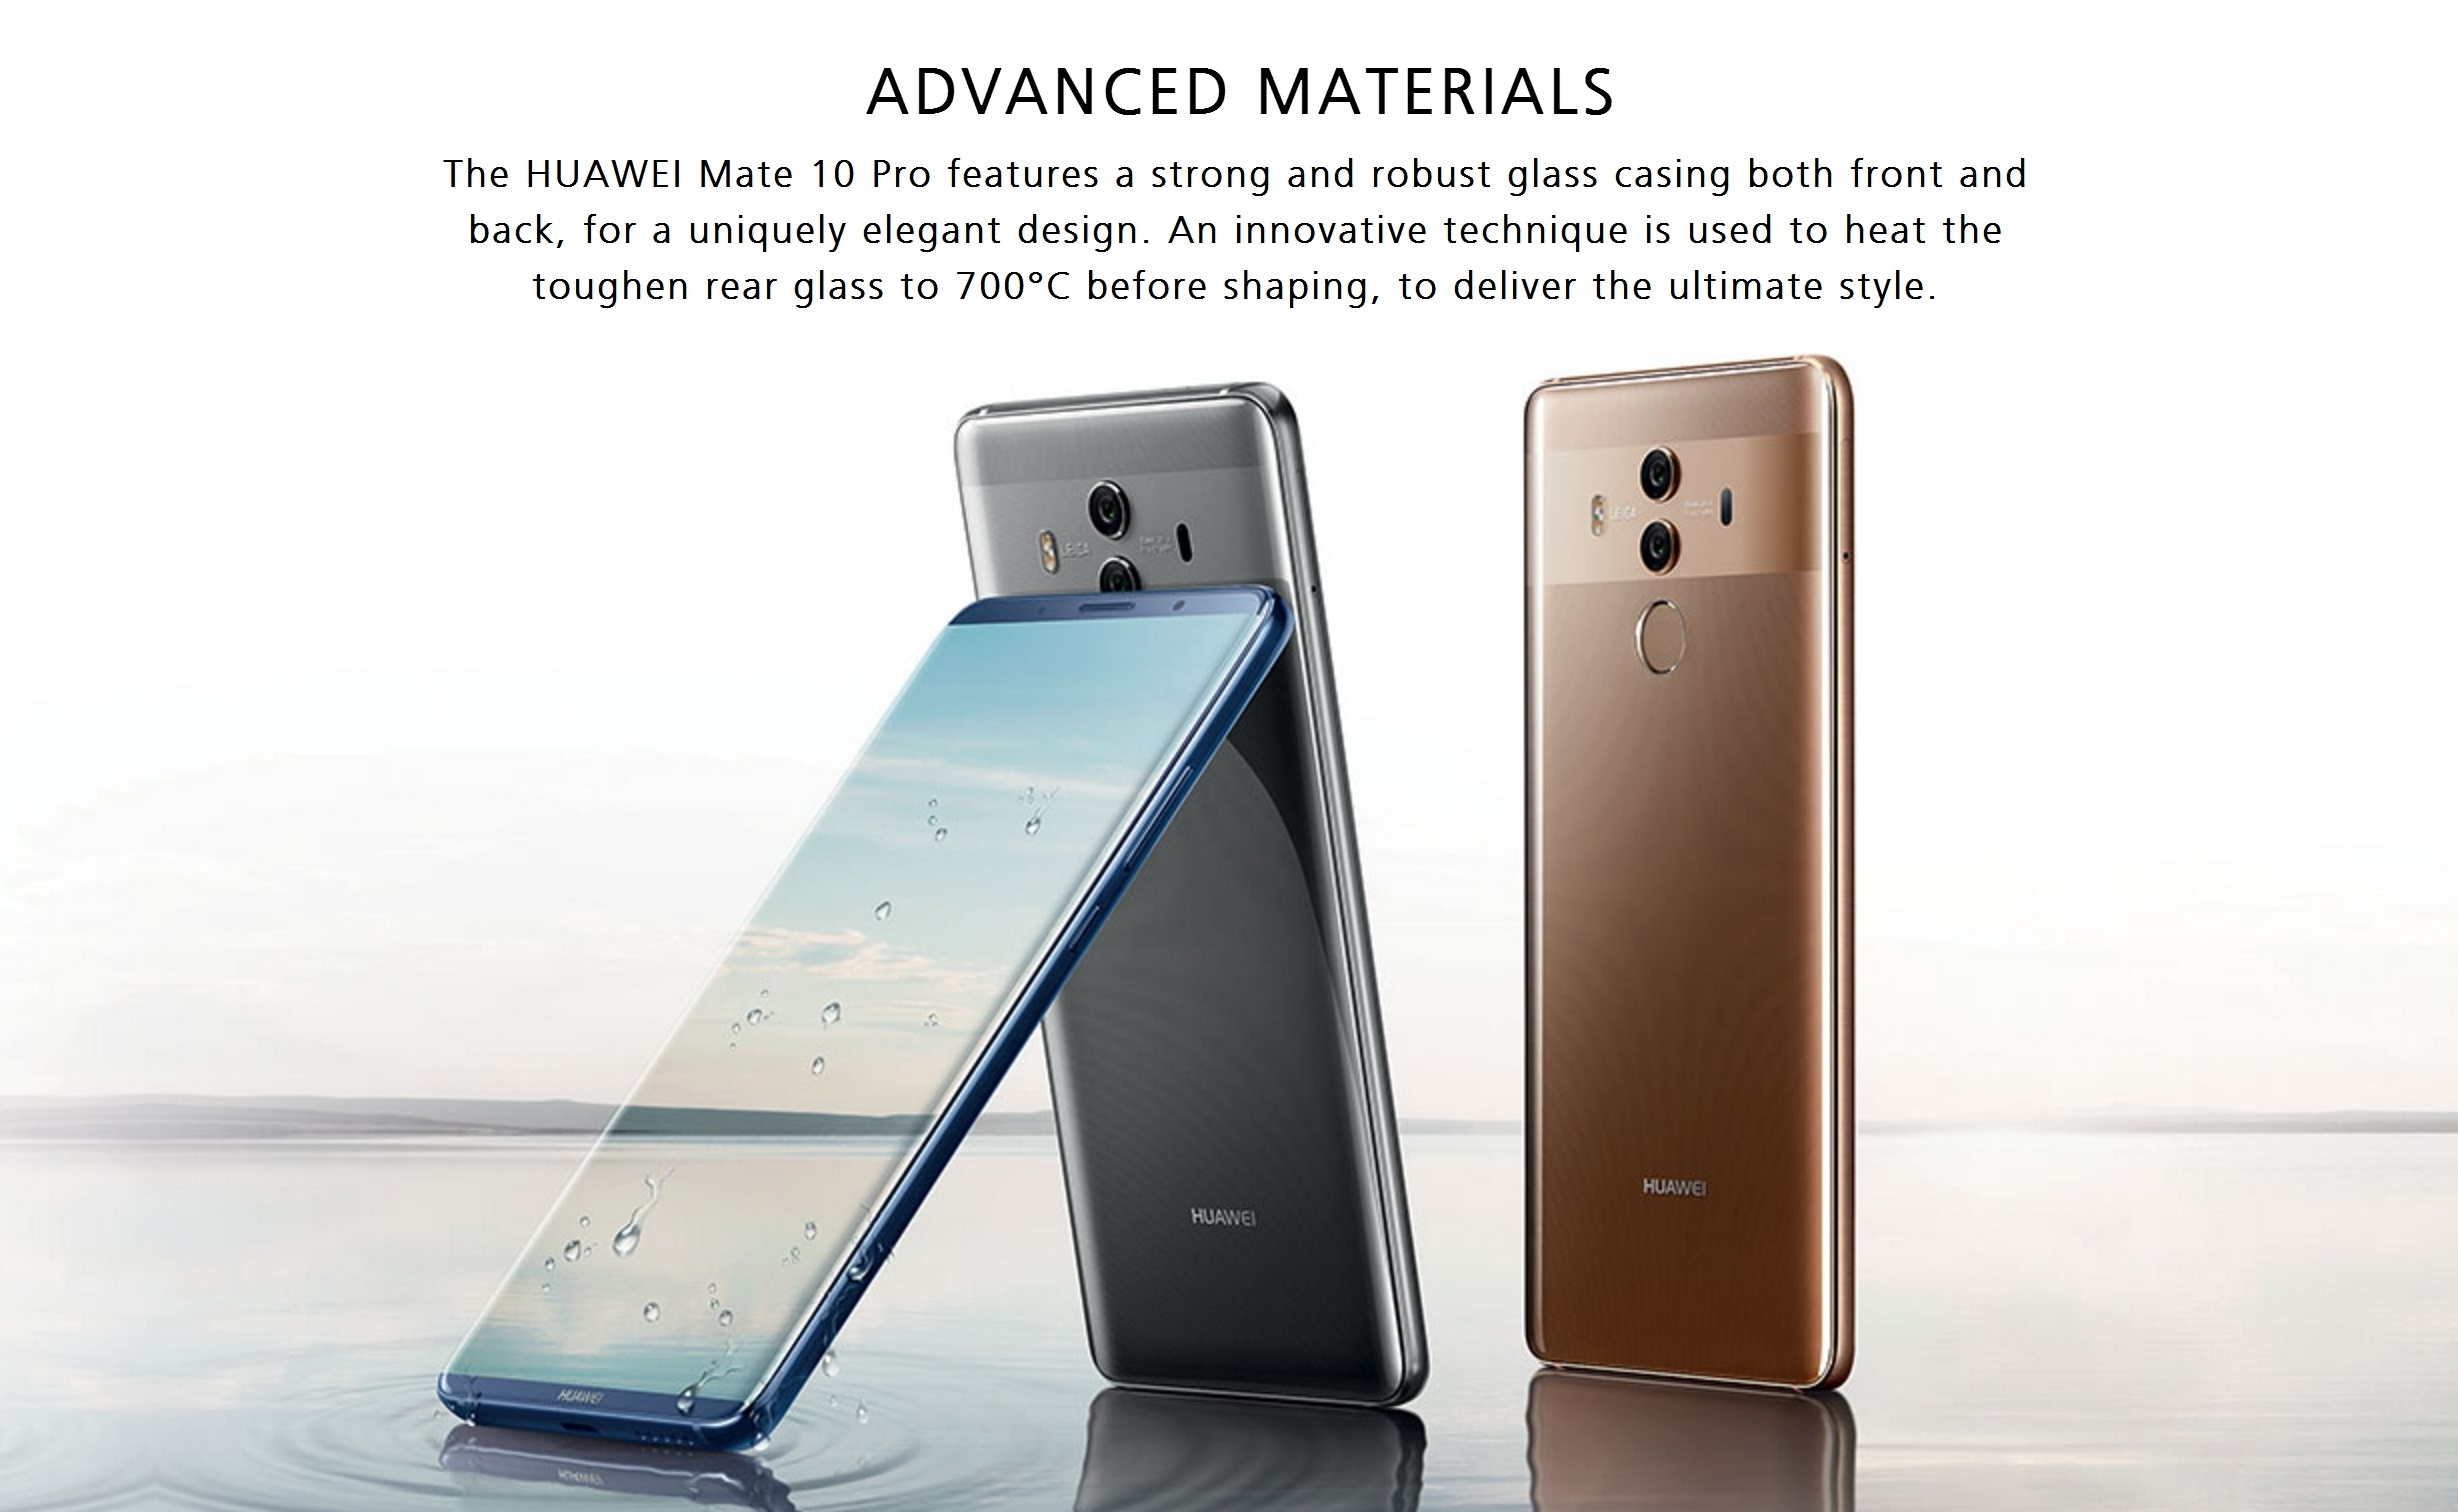 huawei mate 10 pro bleu 6 pouces neuf android 8 0 oreo. Black Bedroom Furniture Sets. Home Design Ideas